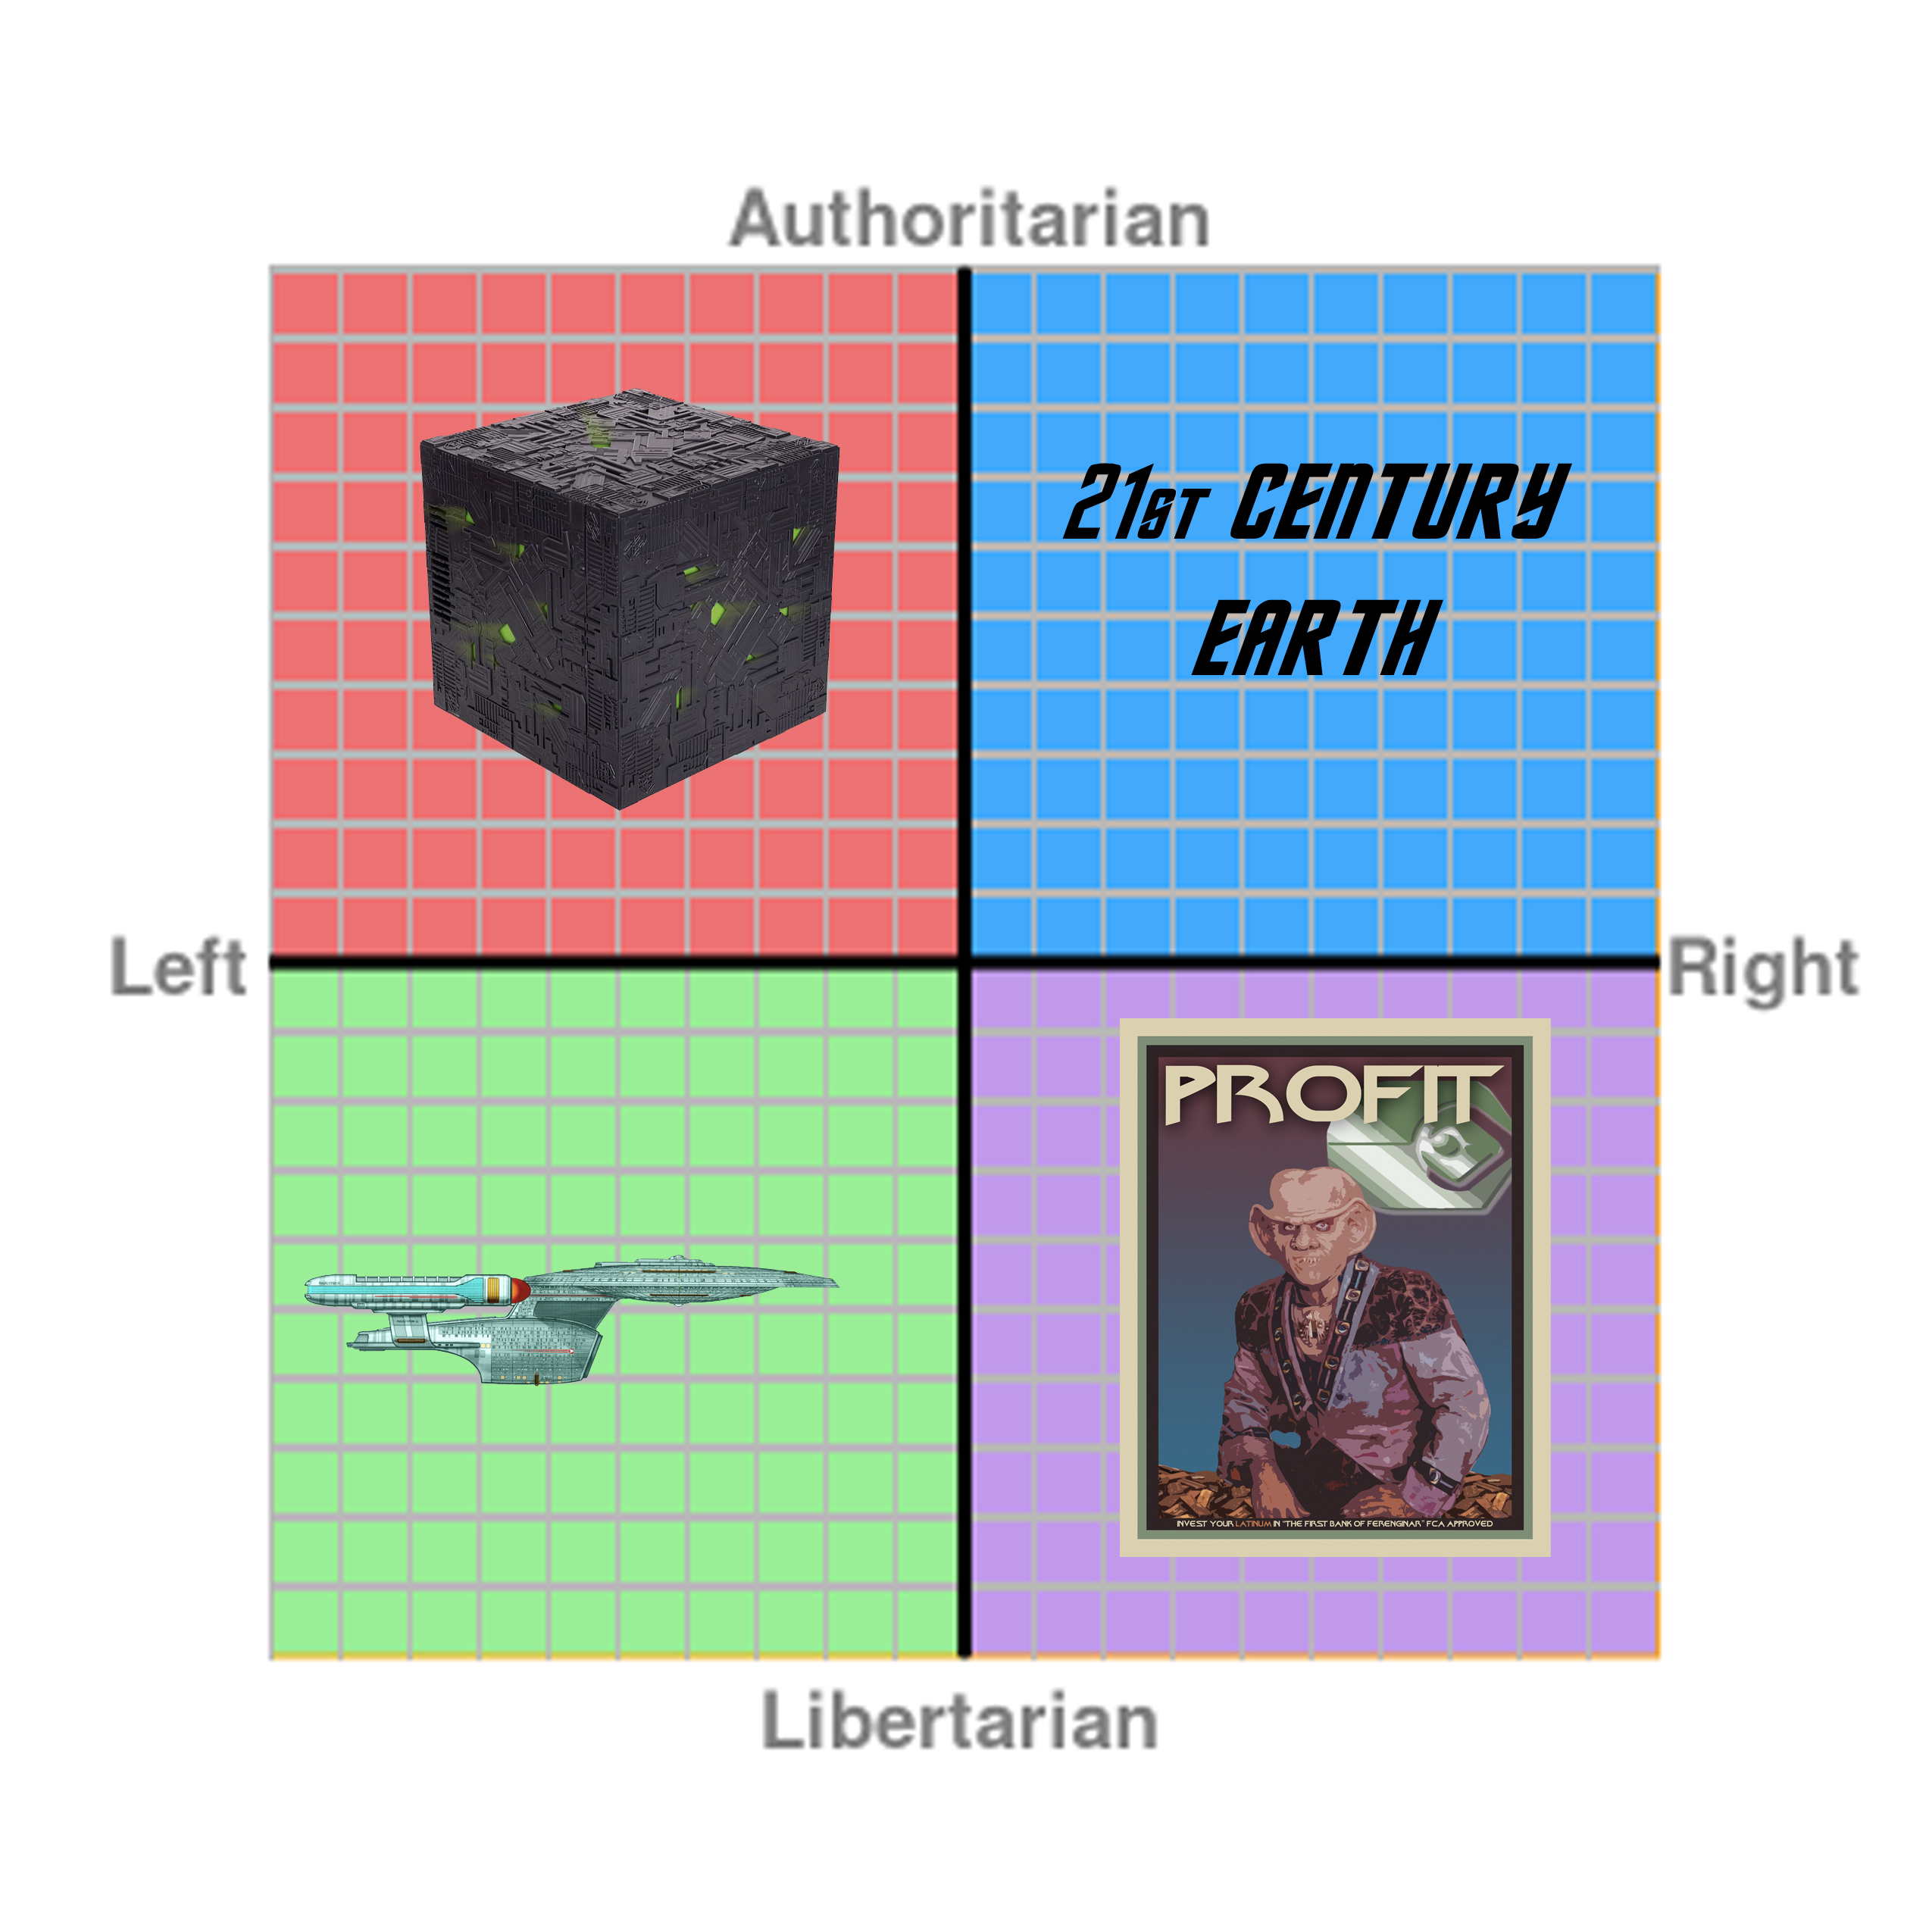 A Star Trek Political Compass On Some Similarities And Differences